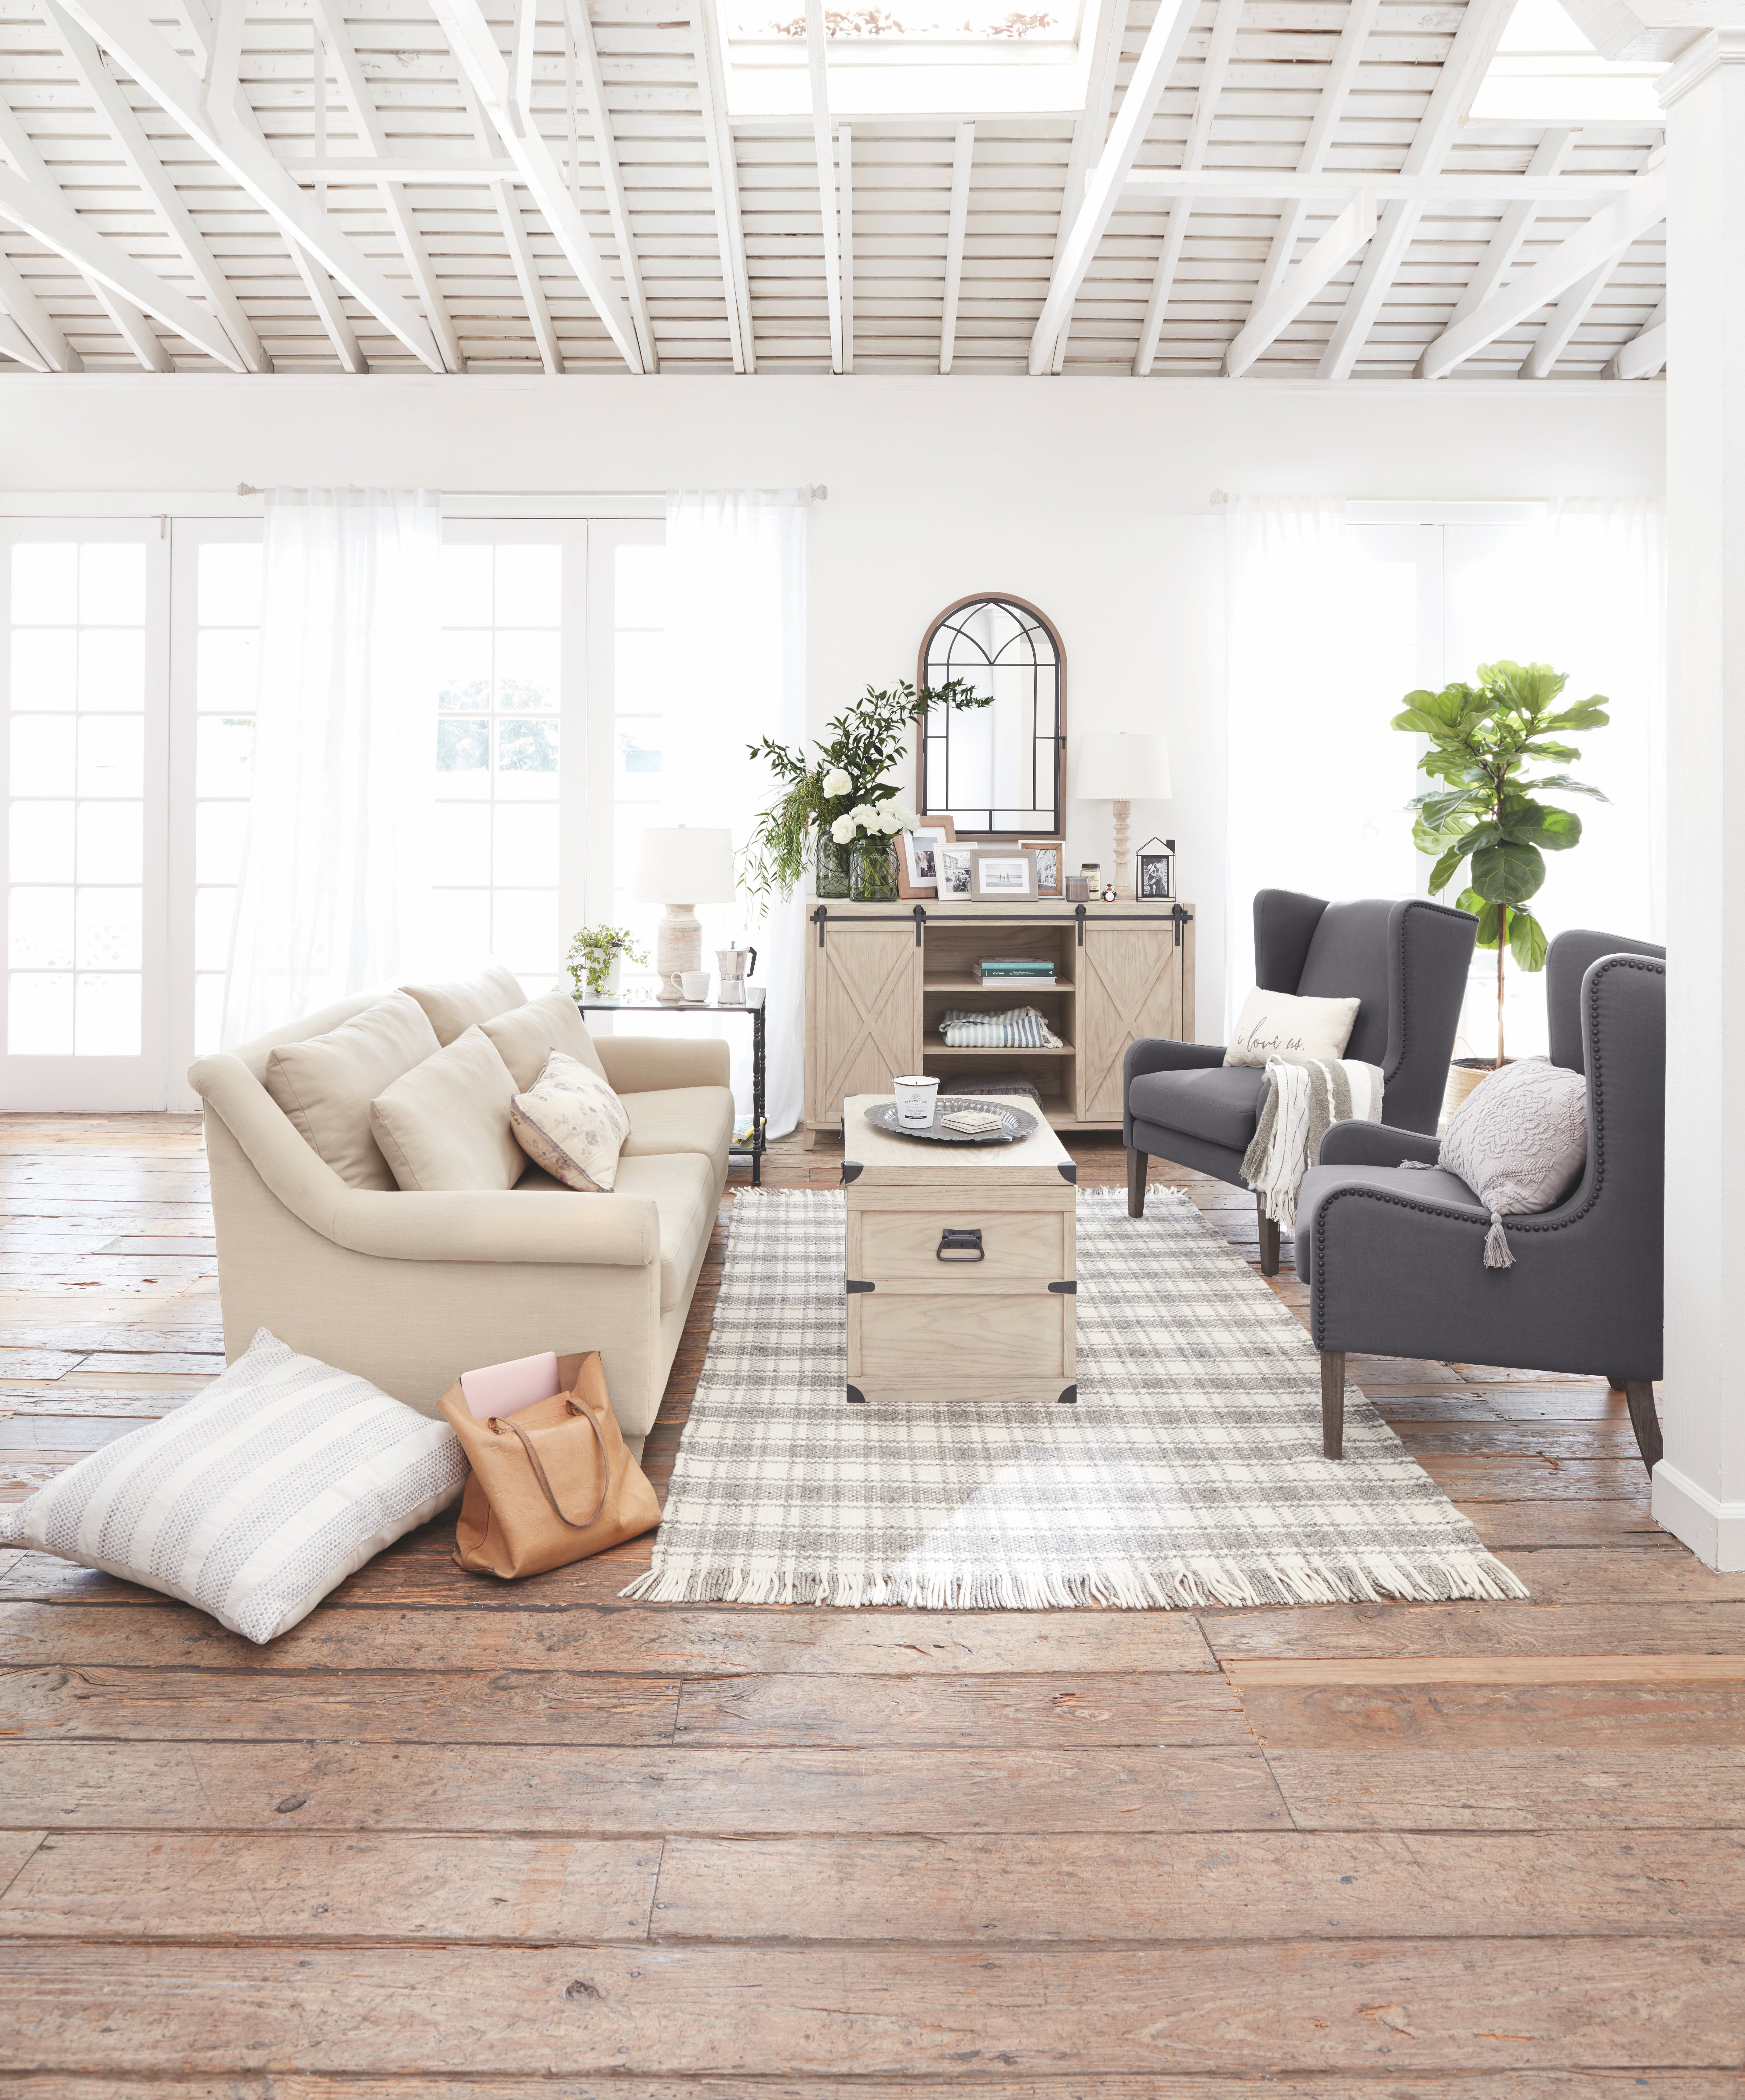 Bed Bath & Beyond's New Home Collection Has Joanna Gaines Written All Over It